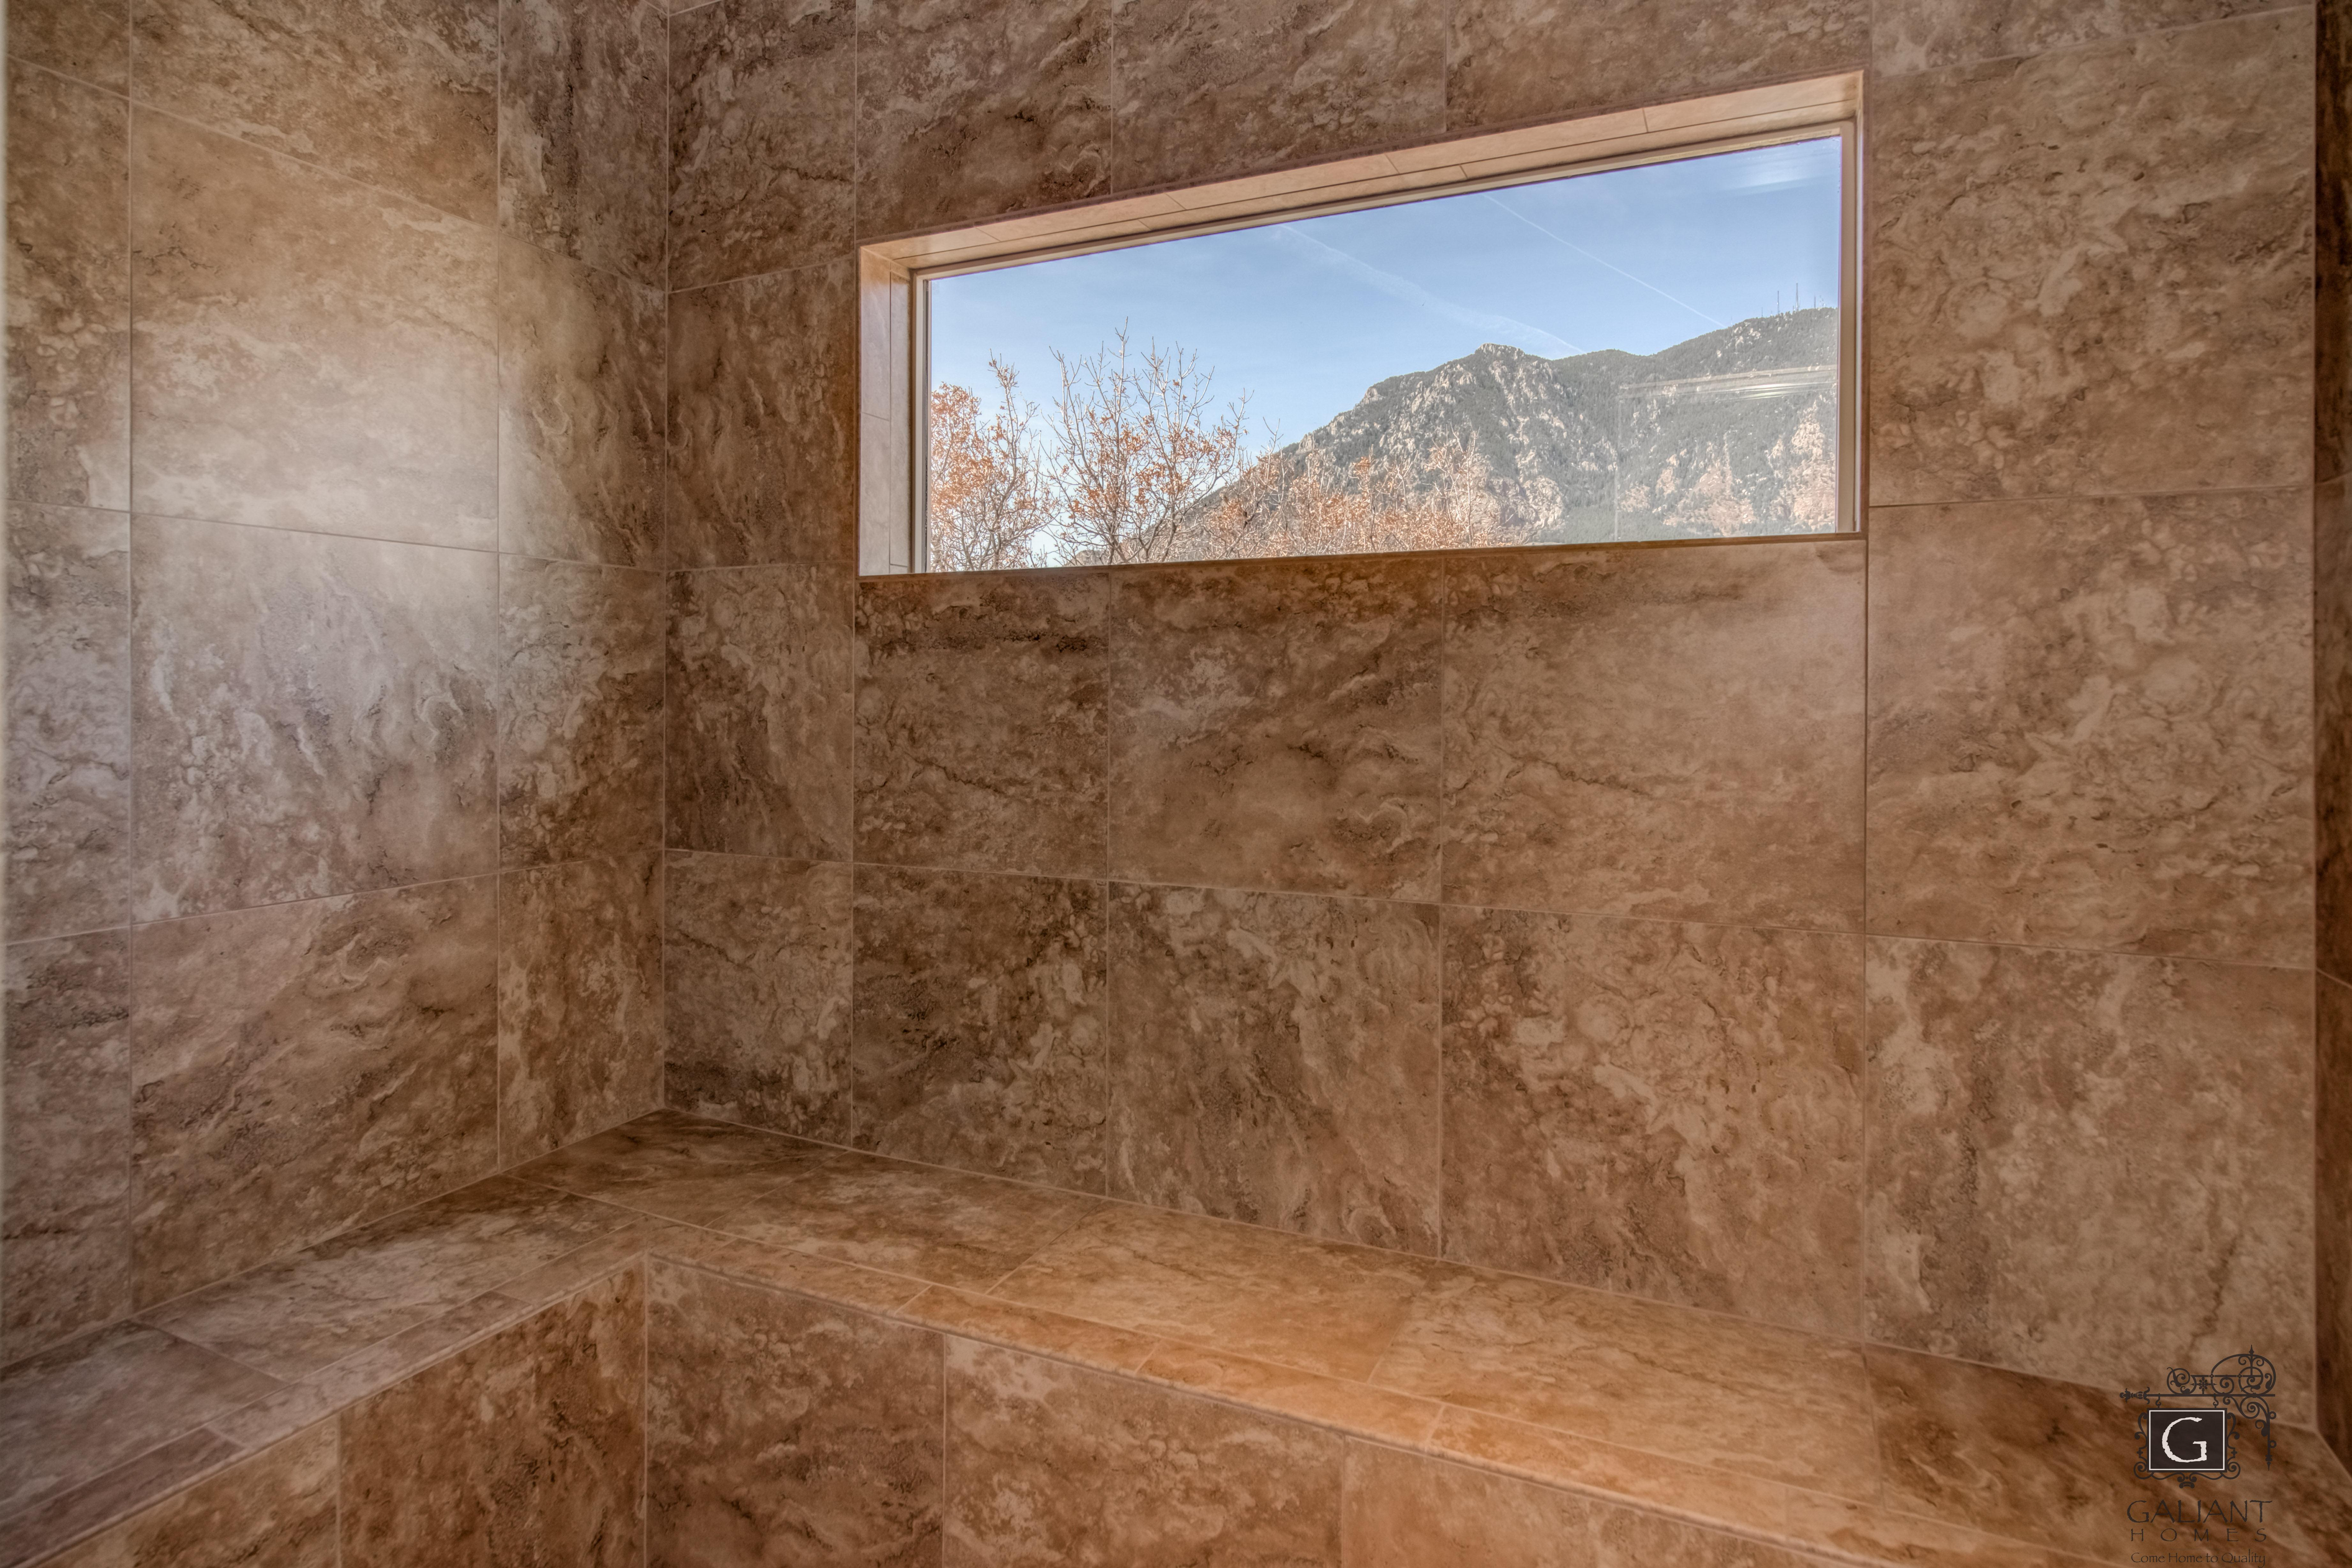 Bathroom featured in the Intrepid (Slab) By Galiant Homes in Colorado Springs, CO